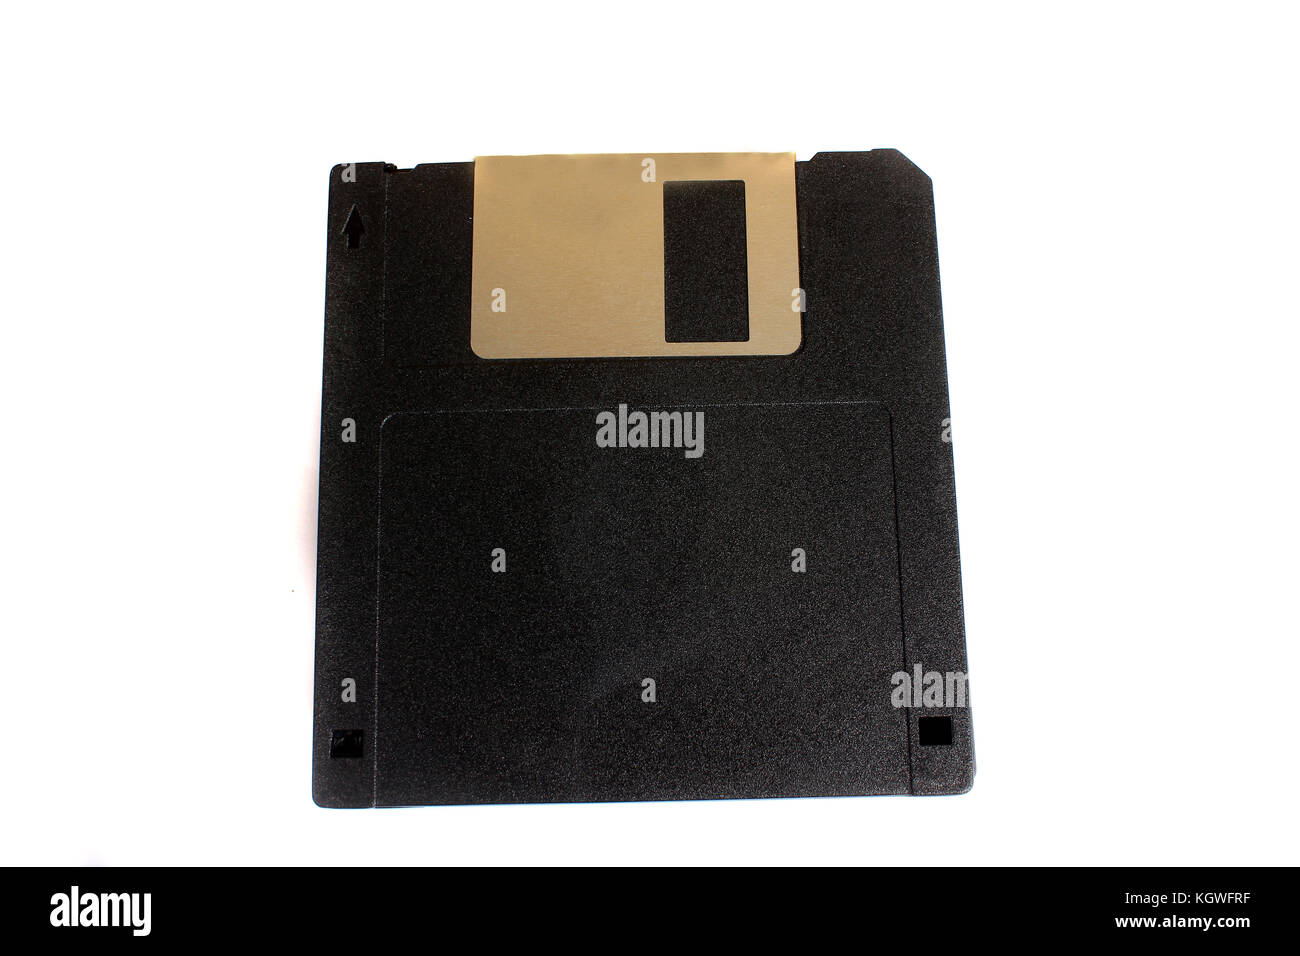 An old black floppy of 3.5 inch and storage of 1.44 MB used for storage. - Stock Image